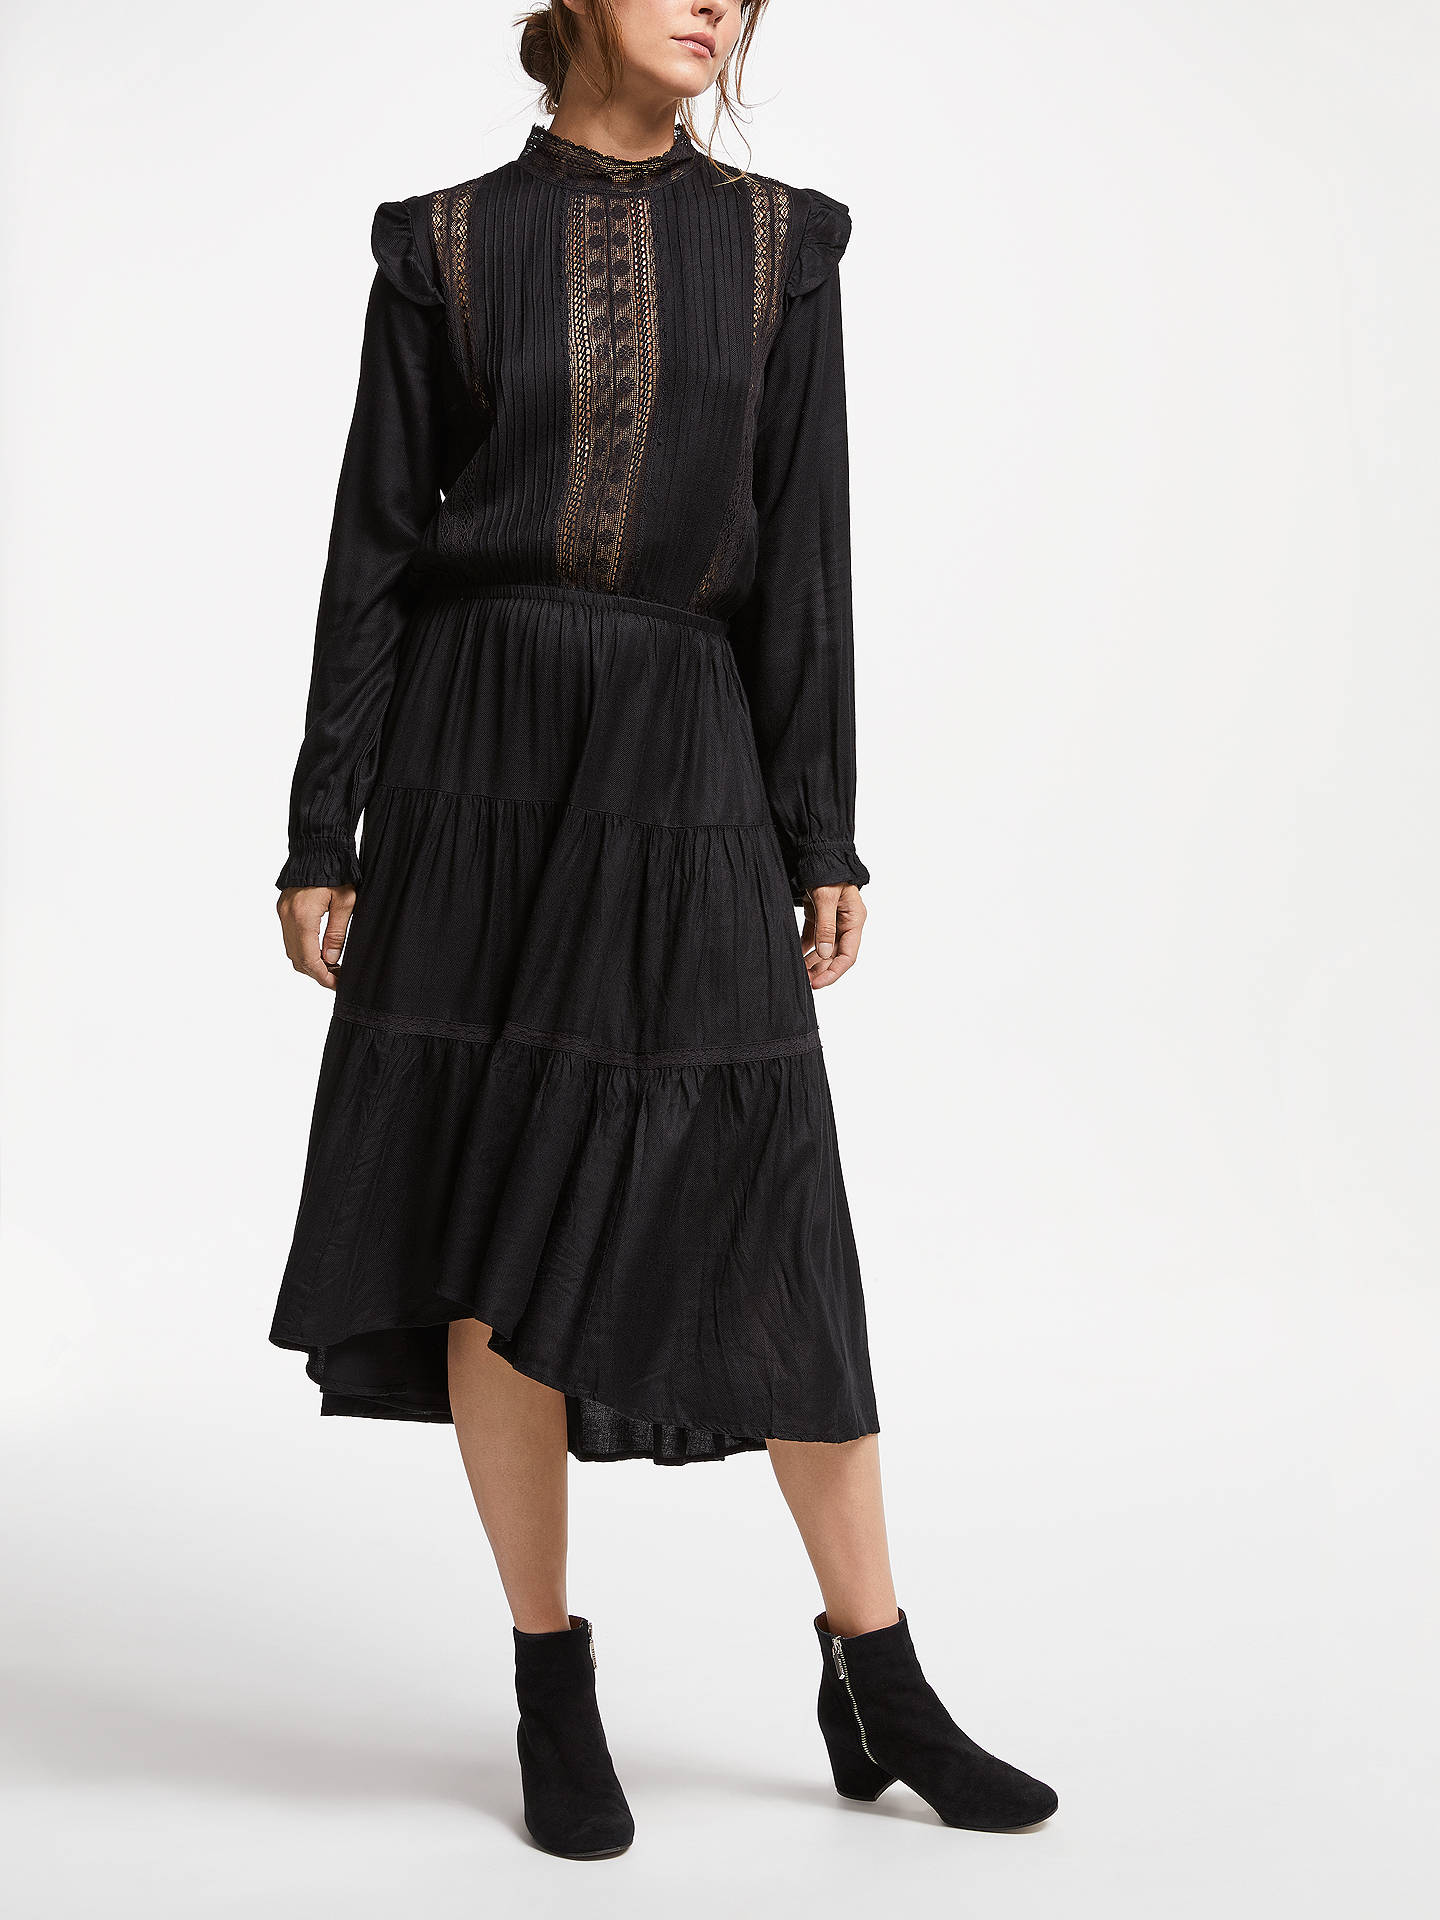 BuySwildens Tamtam Dress, Black, 8 Online at johnlewis.com